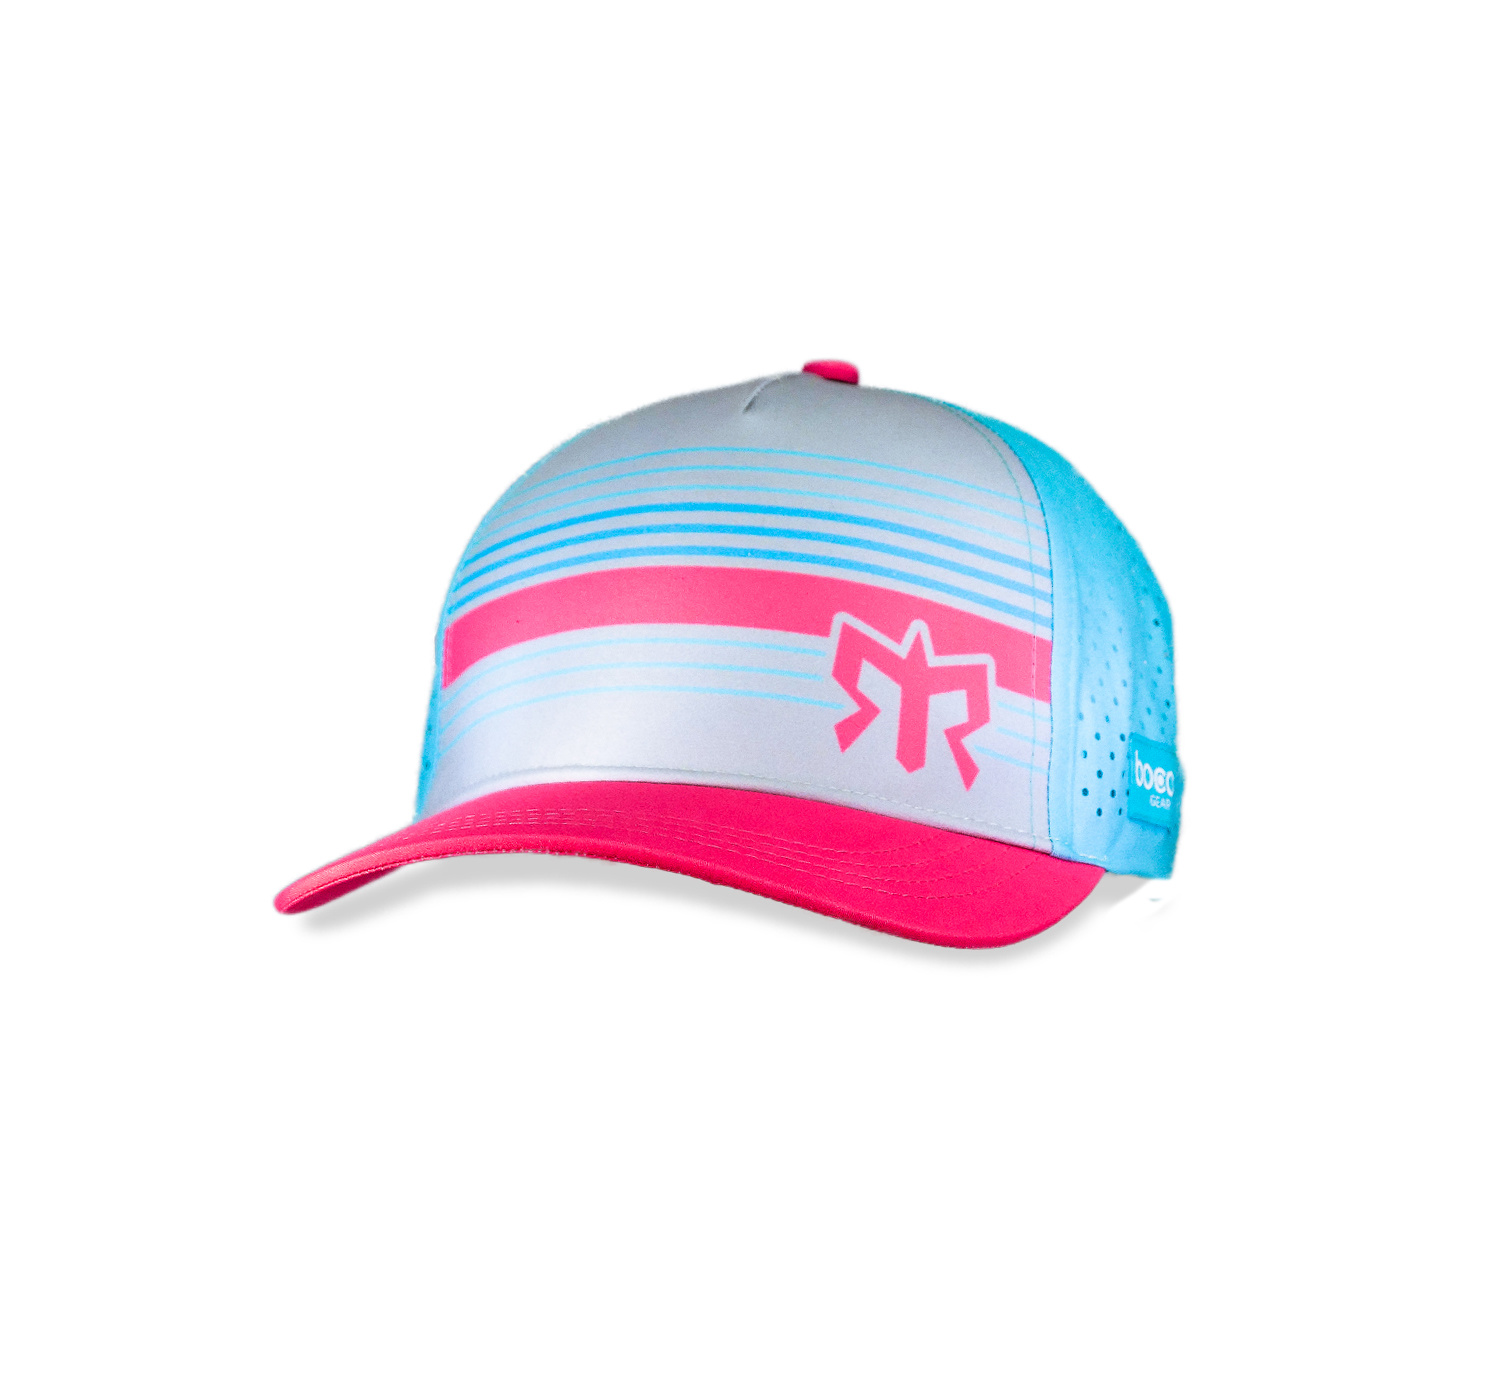 Ragnar Women's Running Trucker